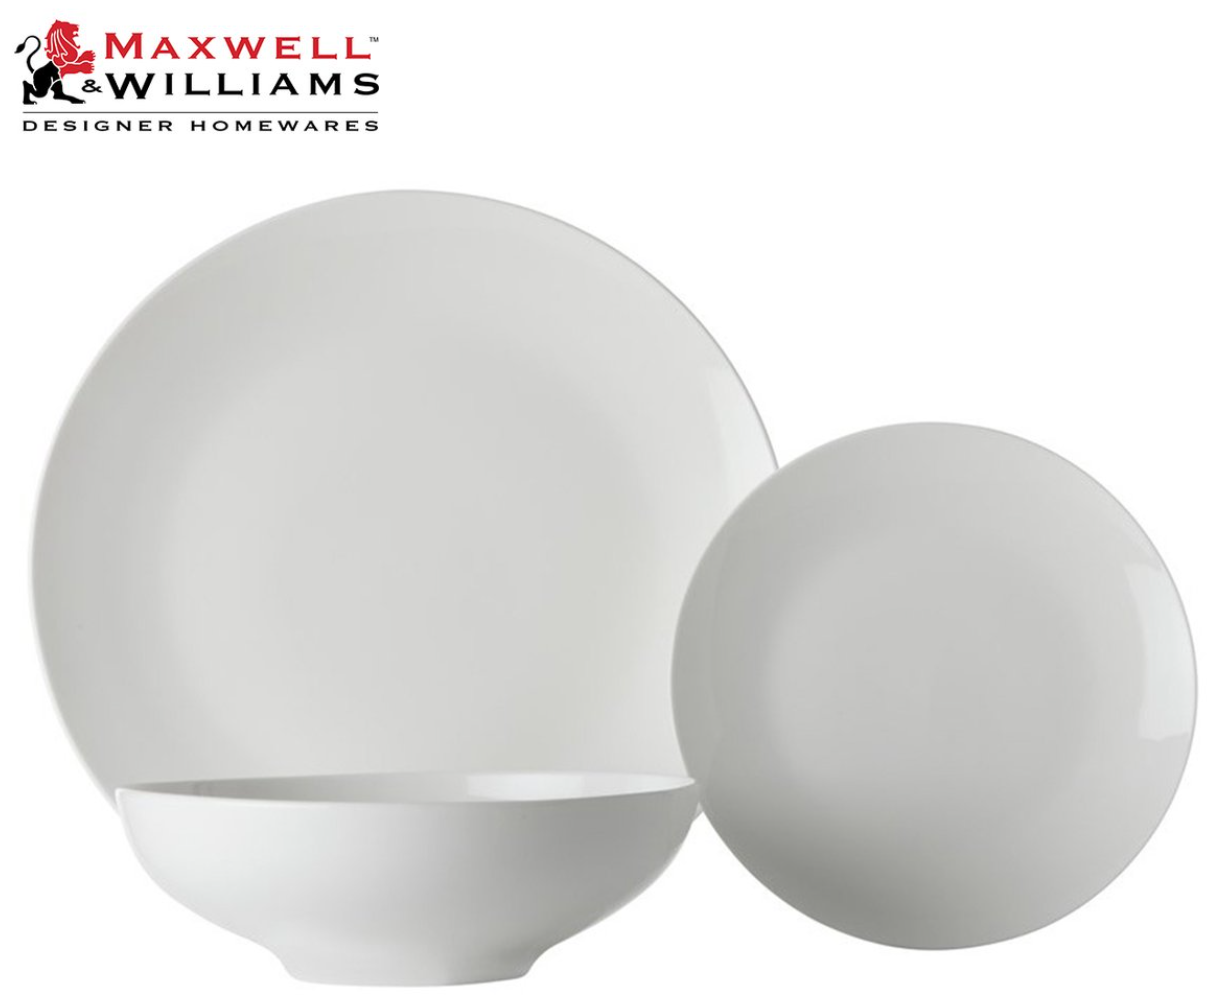 Maxwell & Williams 18-Piece White Basics Tribeca Coupe Dinner Set - $74.95  Was 129.55